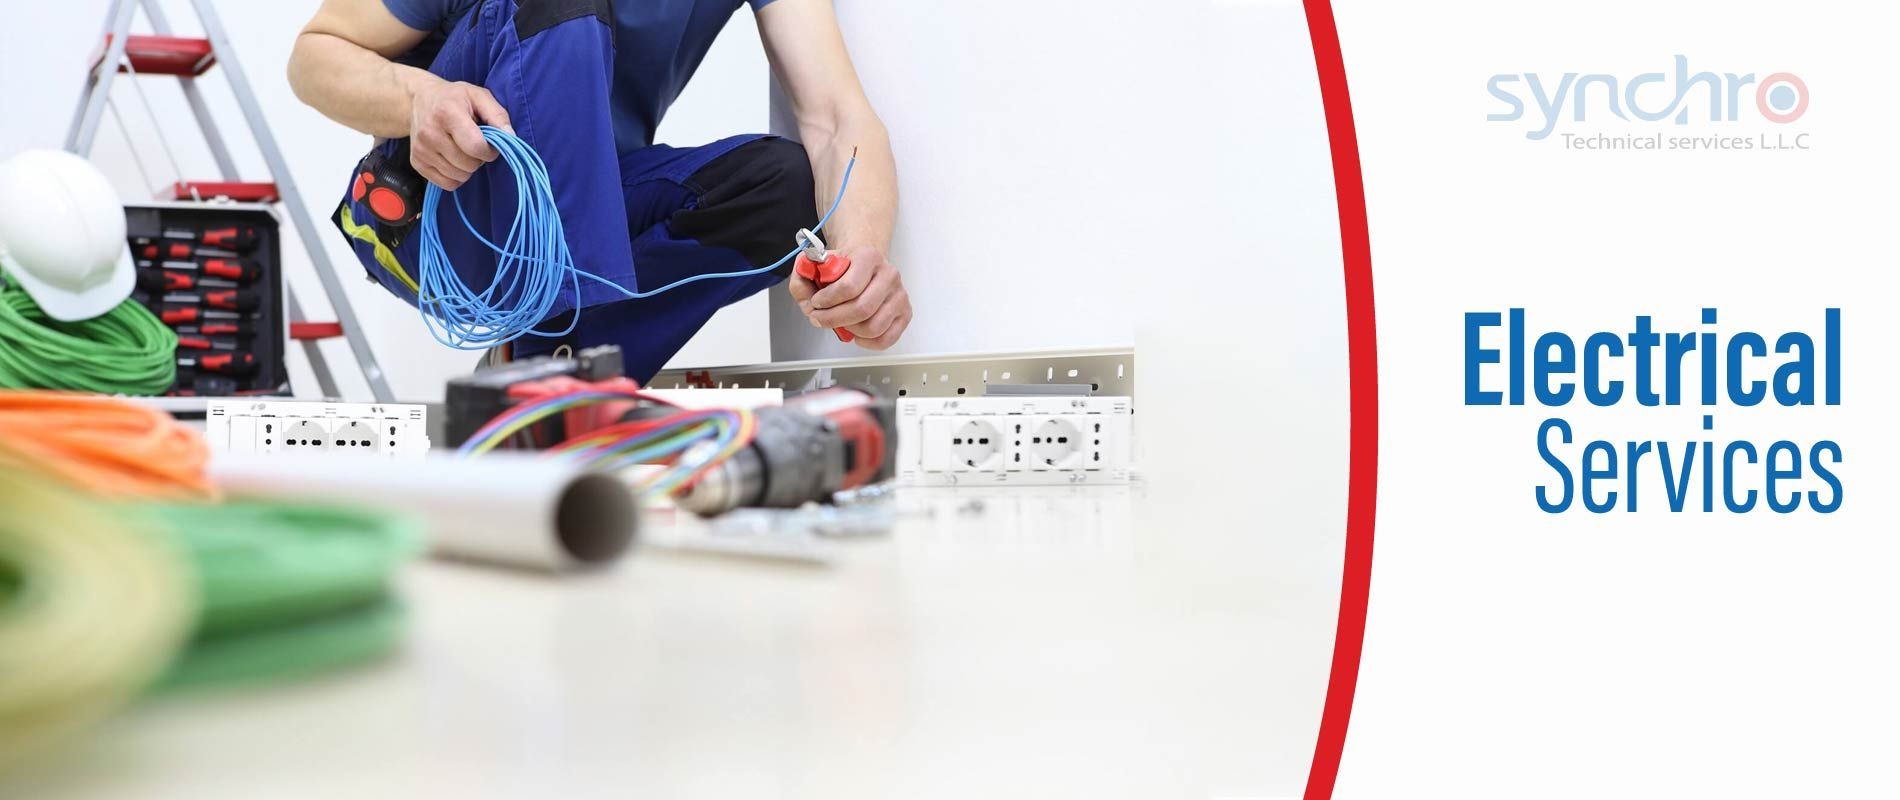 Electrical Services in Dubai, Electrical Maintenance Company in Dubai